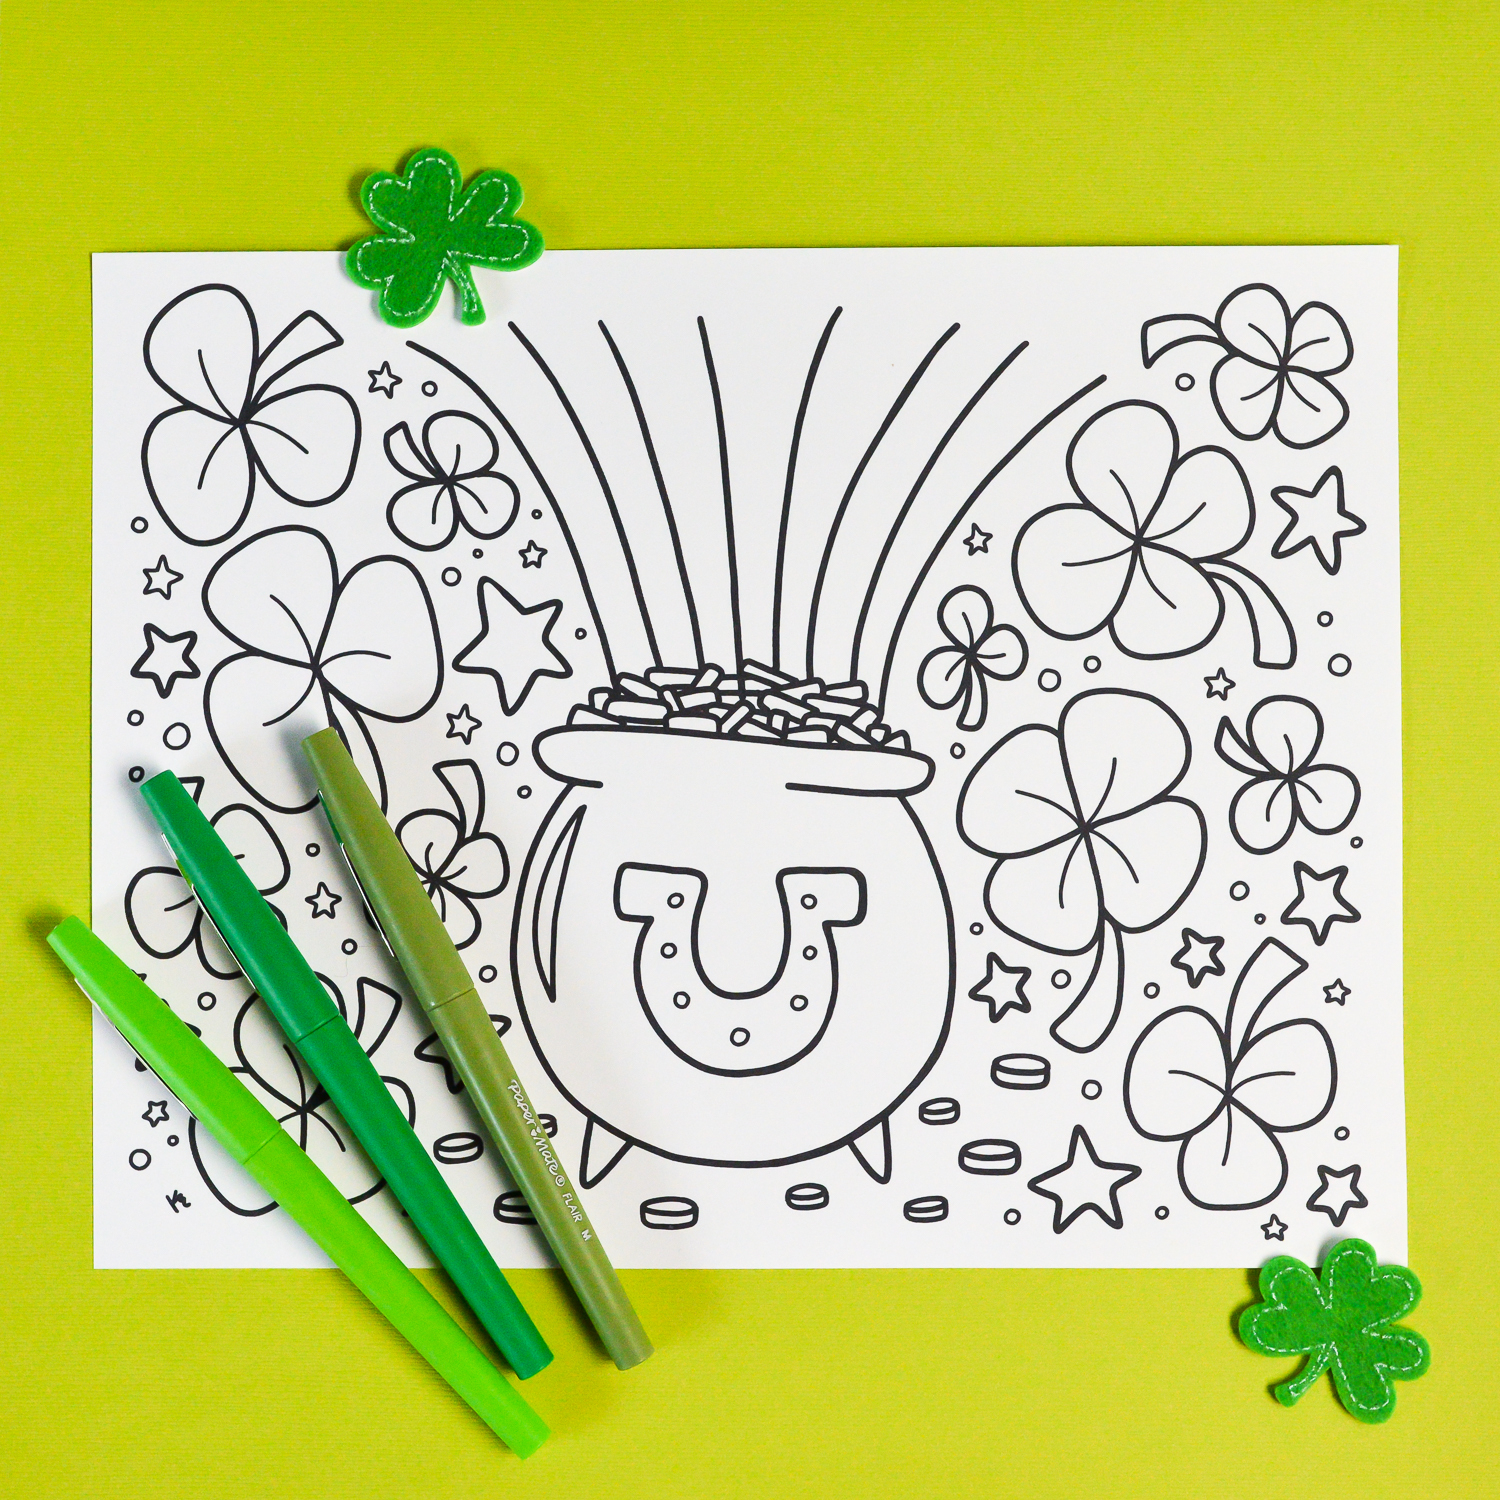 Free Printable St. Patrick's Day Coloring Page - Hey, Let's Make Stuff - Free Printable St Patrick Day Coloring Pages